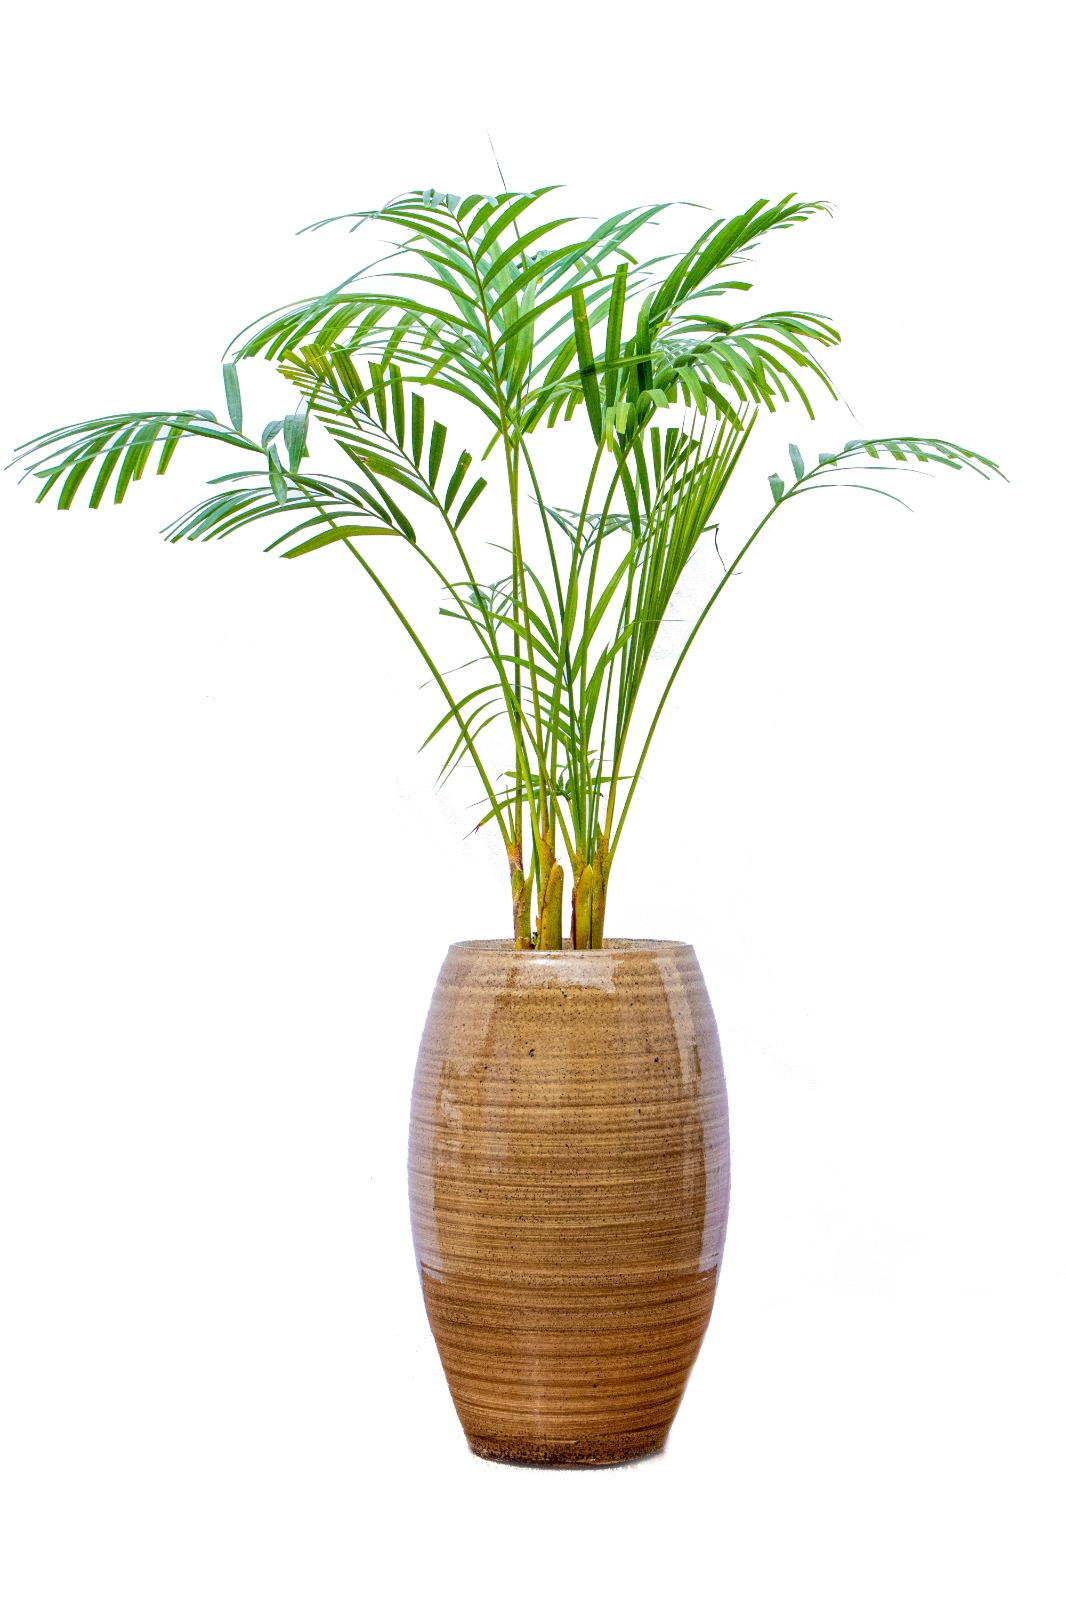 Dypsis Lutescens - Small 'Premium Collection'